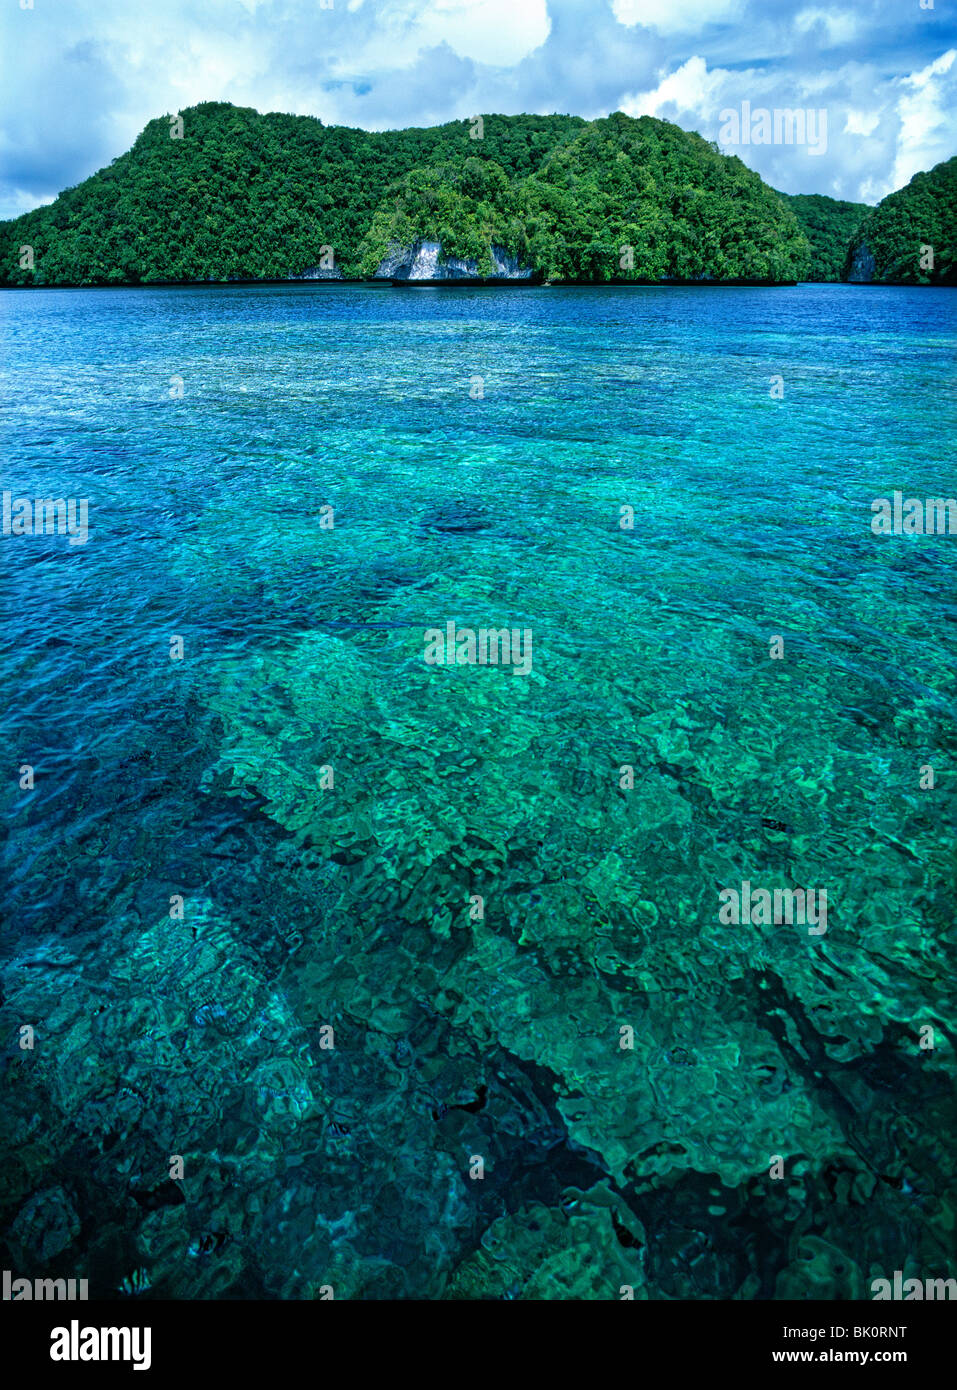 palau coral reef essay A gis map of palau's coral reefs source: a political map of the islands of palau.